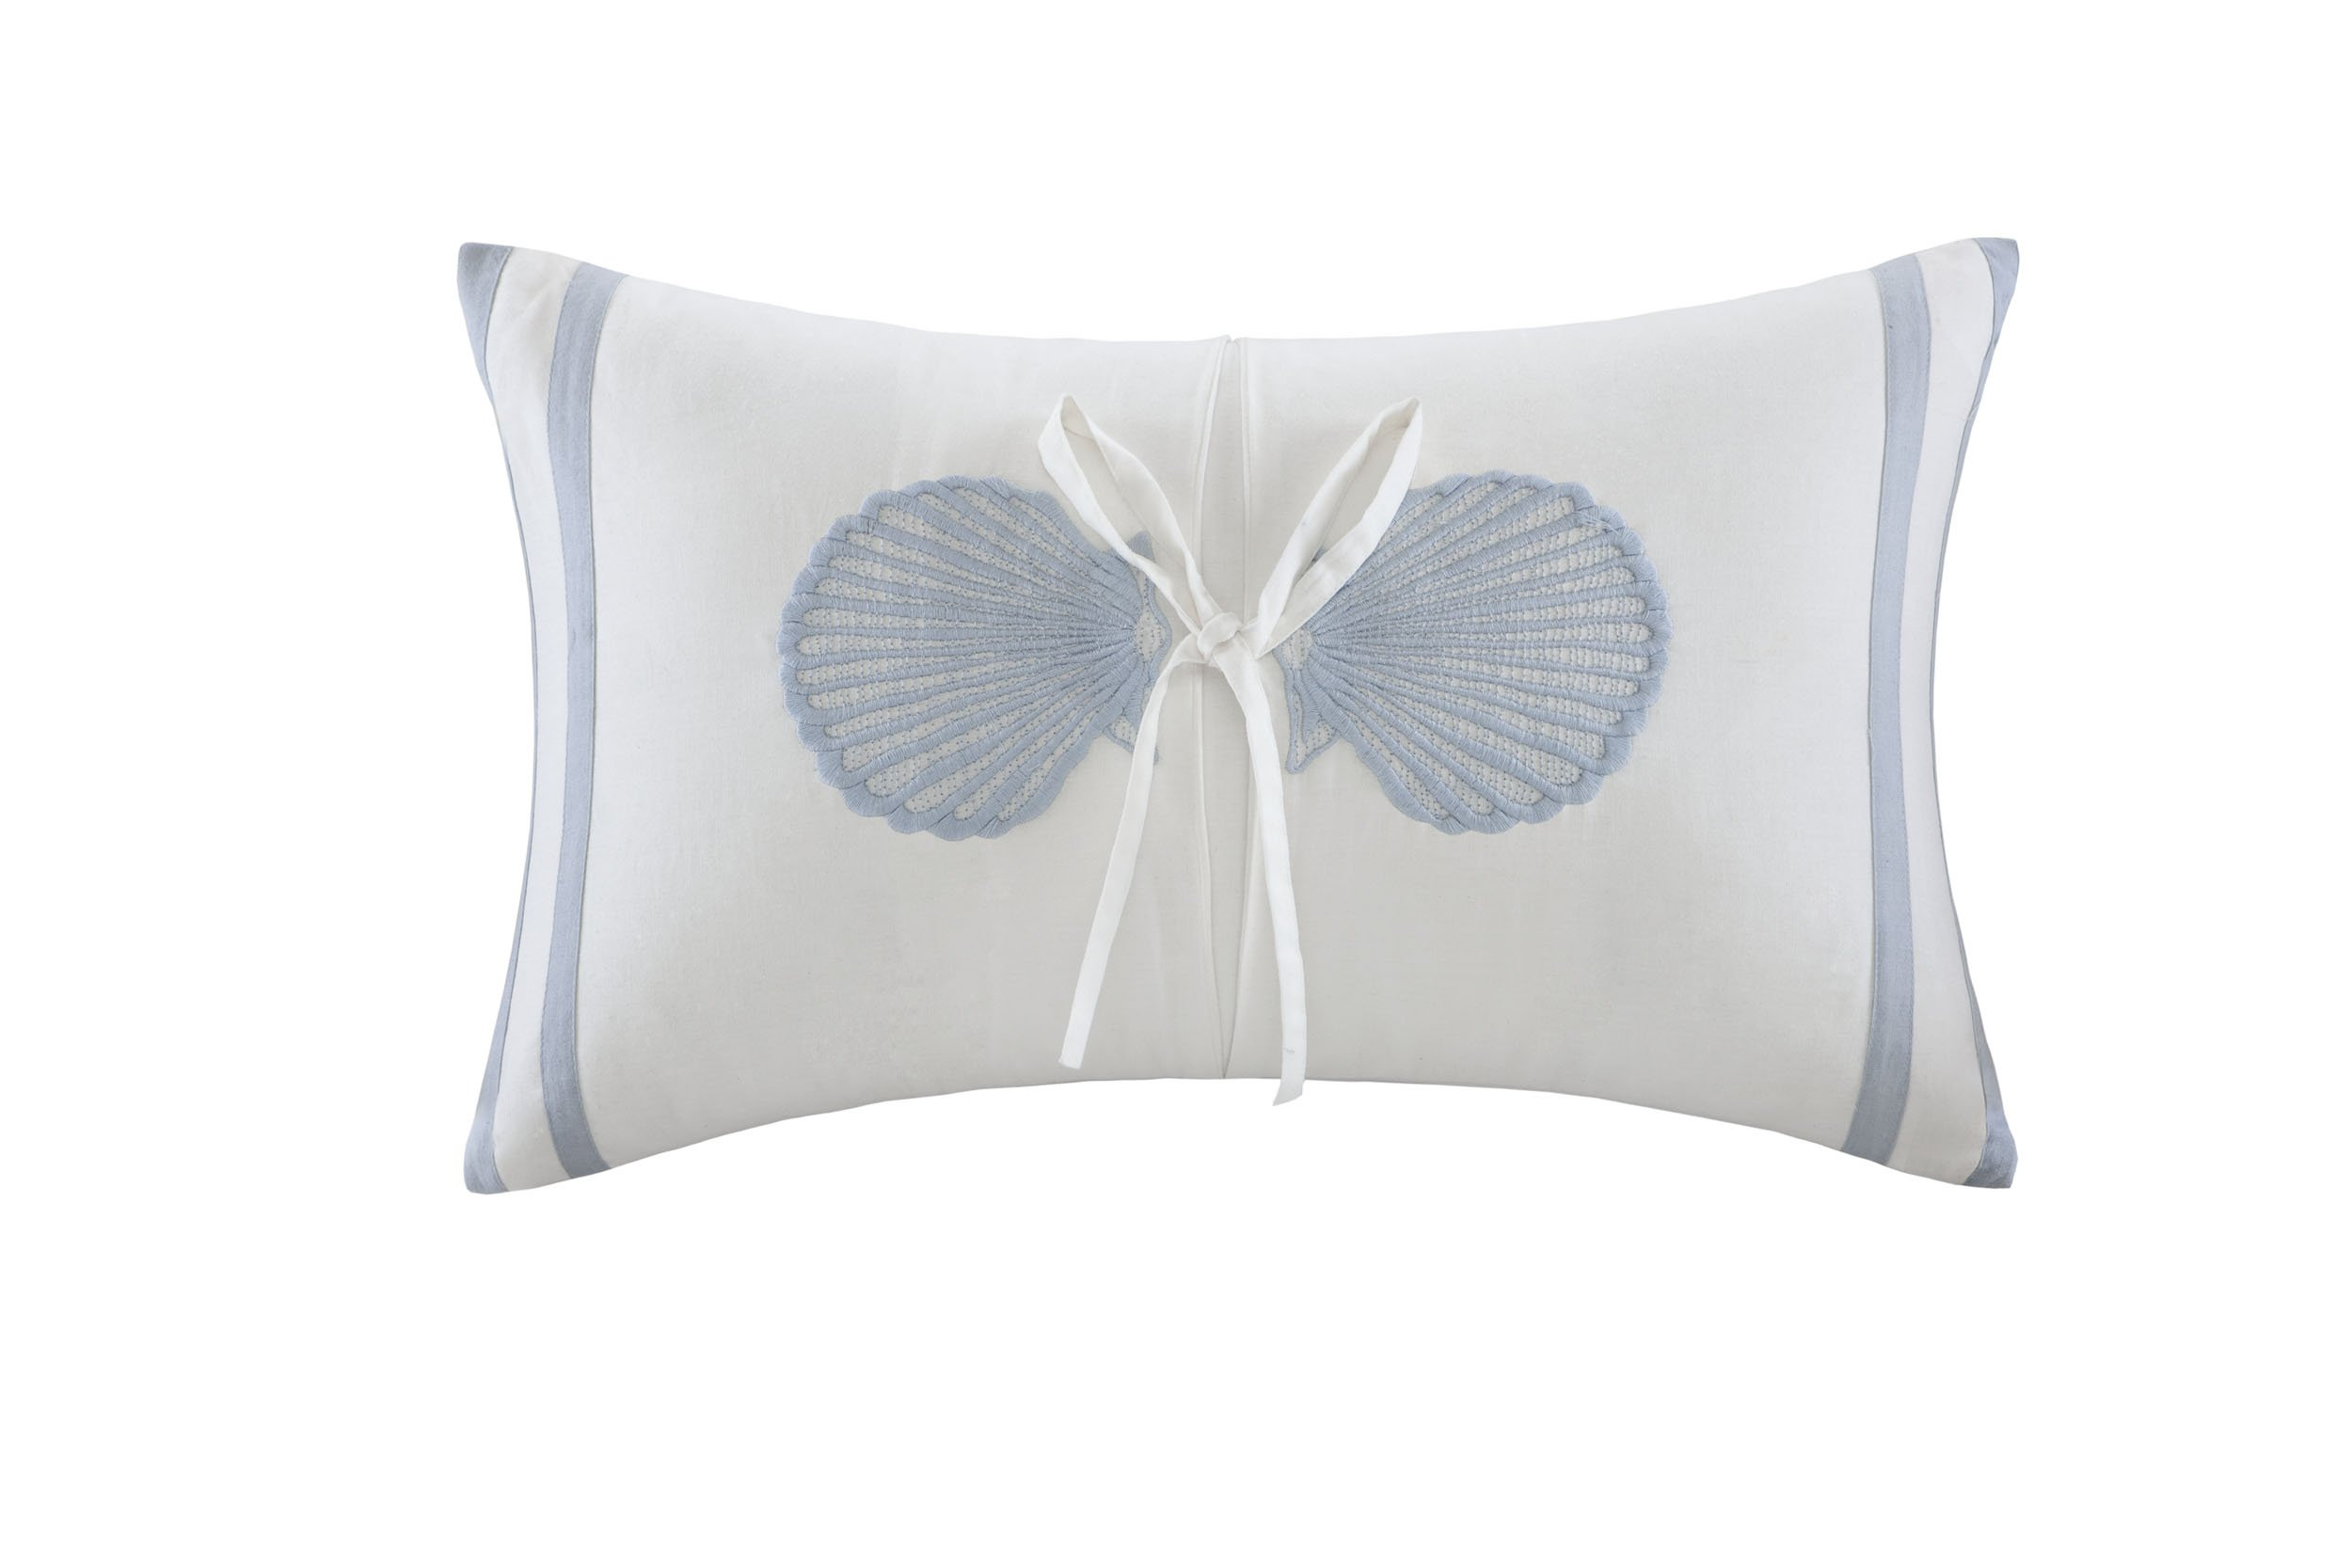 Harbor House Crystal Beach Embroidered Fashion Cotton Throw Pillow, Coastal Theme Oblong Decorative Pillow, 12X20, White - The oblong pillow in this set is white with two embroidered blue seashells in the center; this pillow is finished with a fabric tie around the center 100-percent cotton with shell motfi embroidery Measurements: 12 by 18-inch - living-room-soft-furnishings, living-room, decorative-pillows - 71KaiI33m5L -